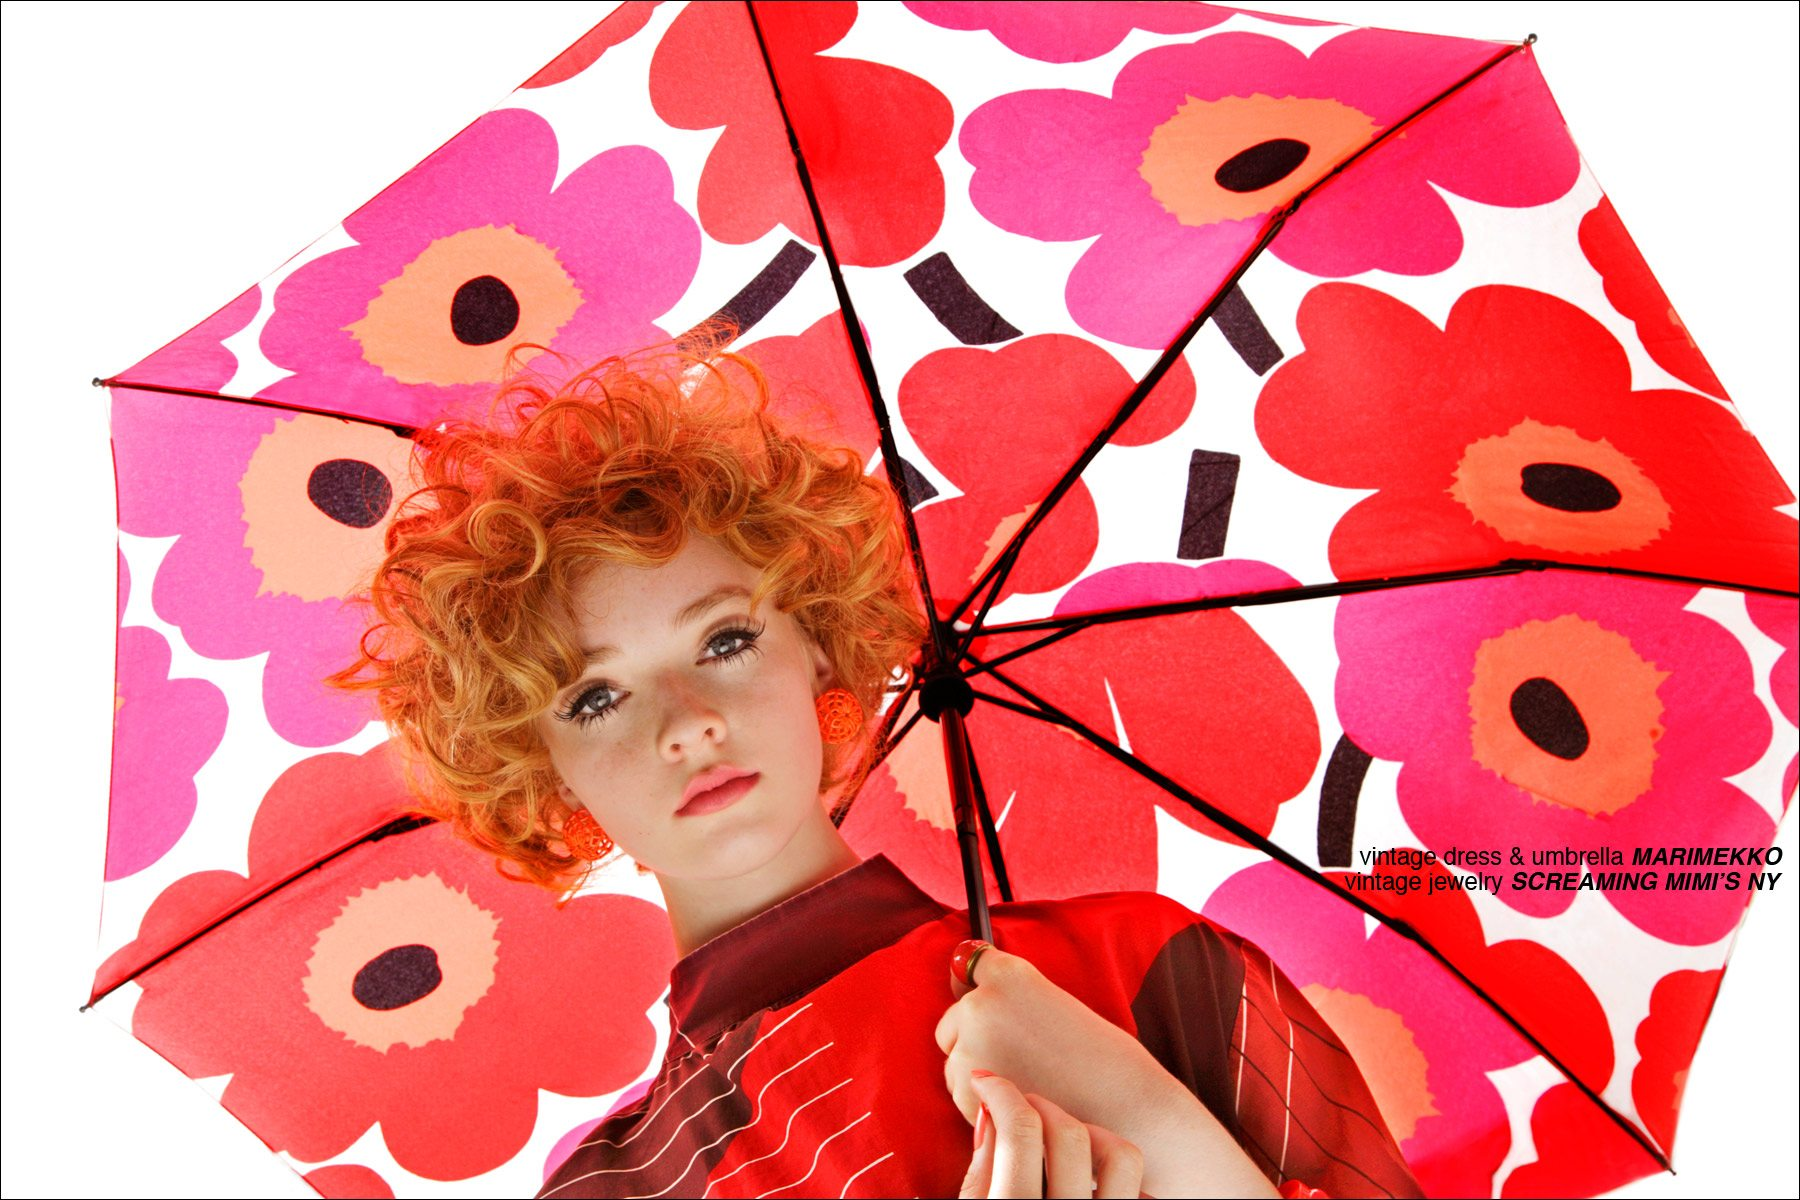 A model holds a Marimekko floral umbrella, photographed by Alexander Thompson for Ponyboy Magazine in New York City.